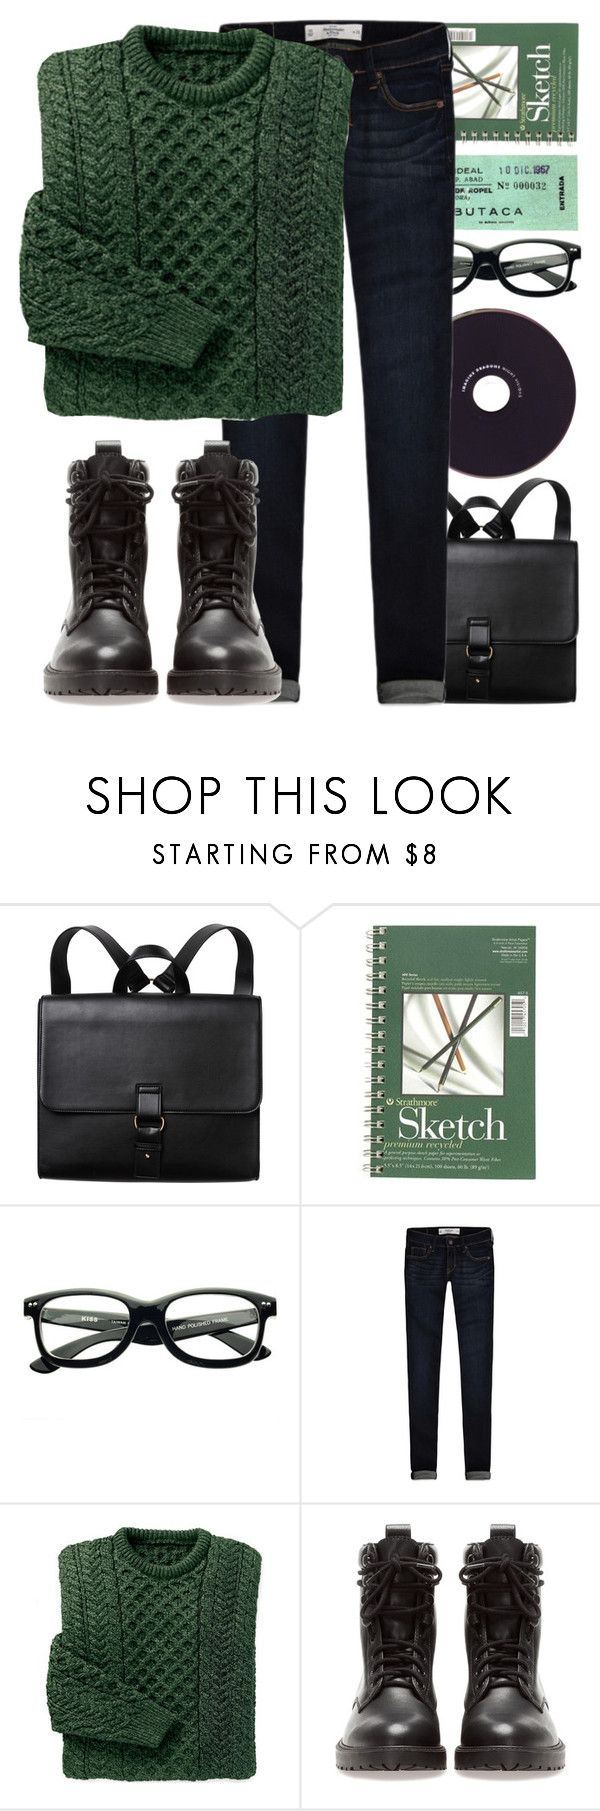 """""""N.8"""" by jreisch ❤ liked on Polyvore featuring Monki, Abercrombie & Fitch and Pull&Bear"""